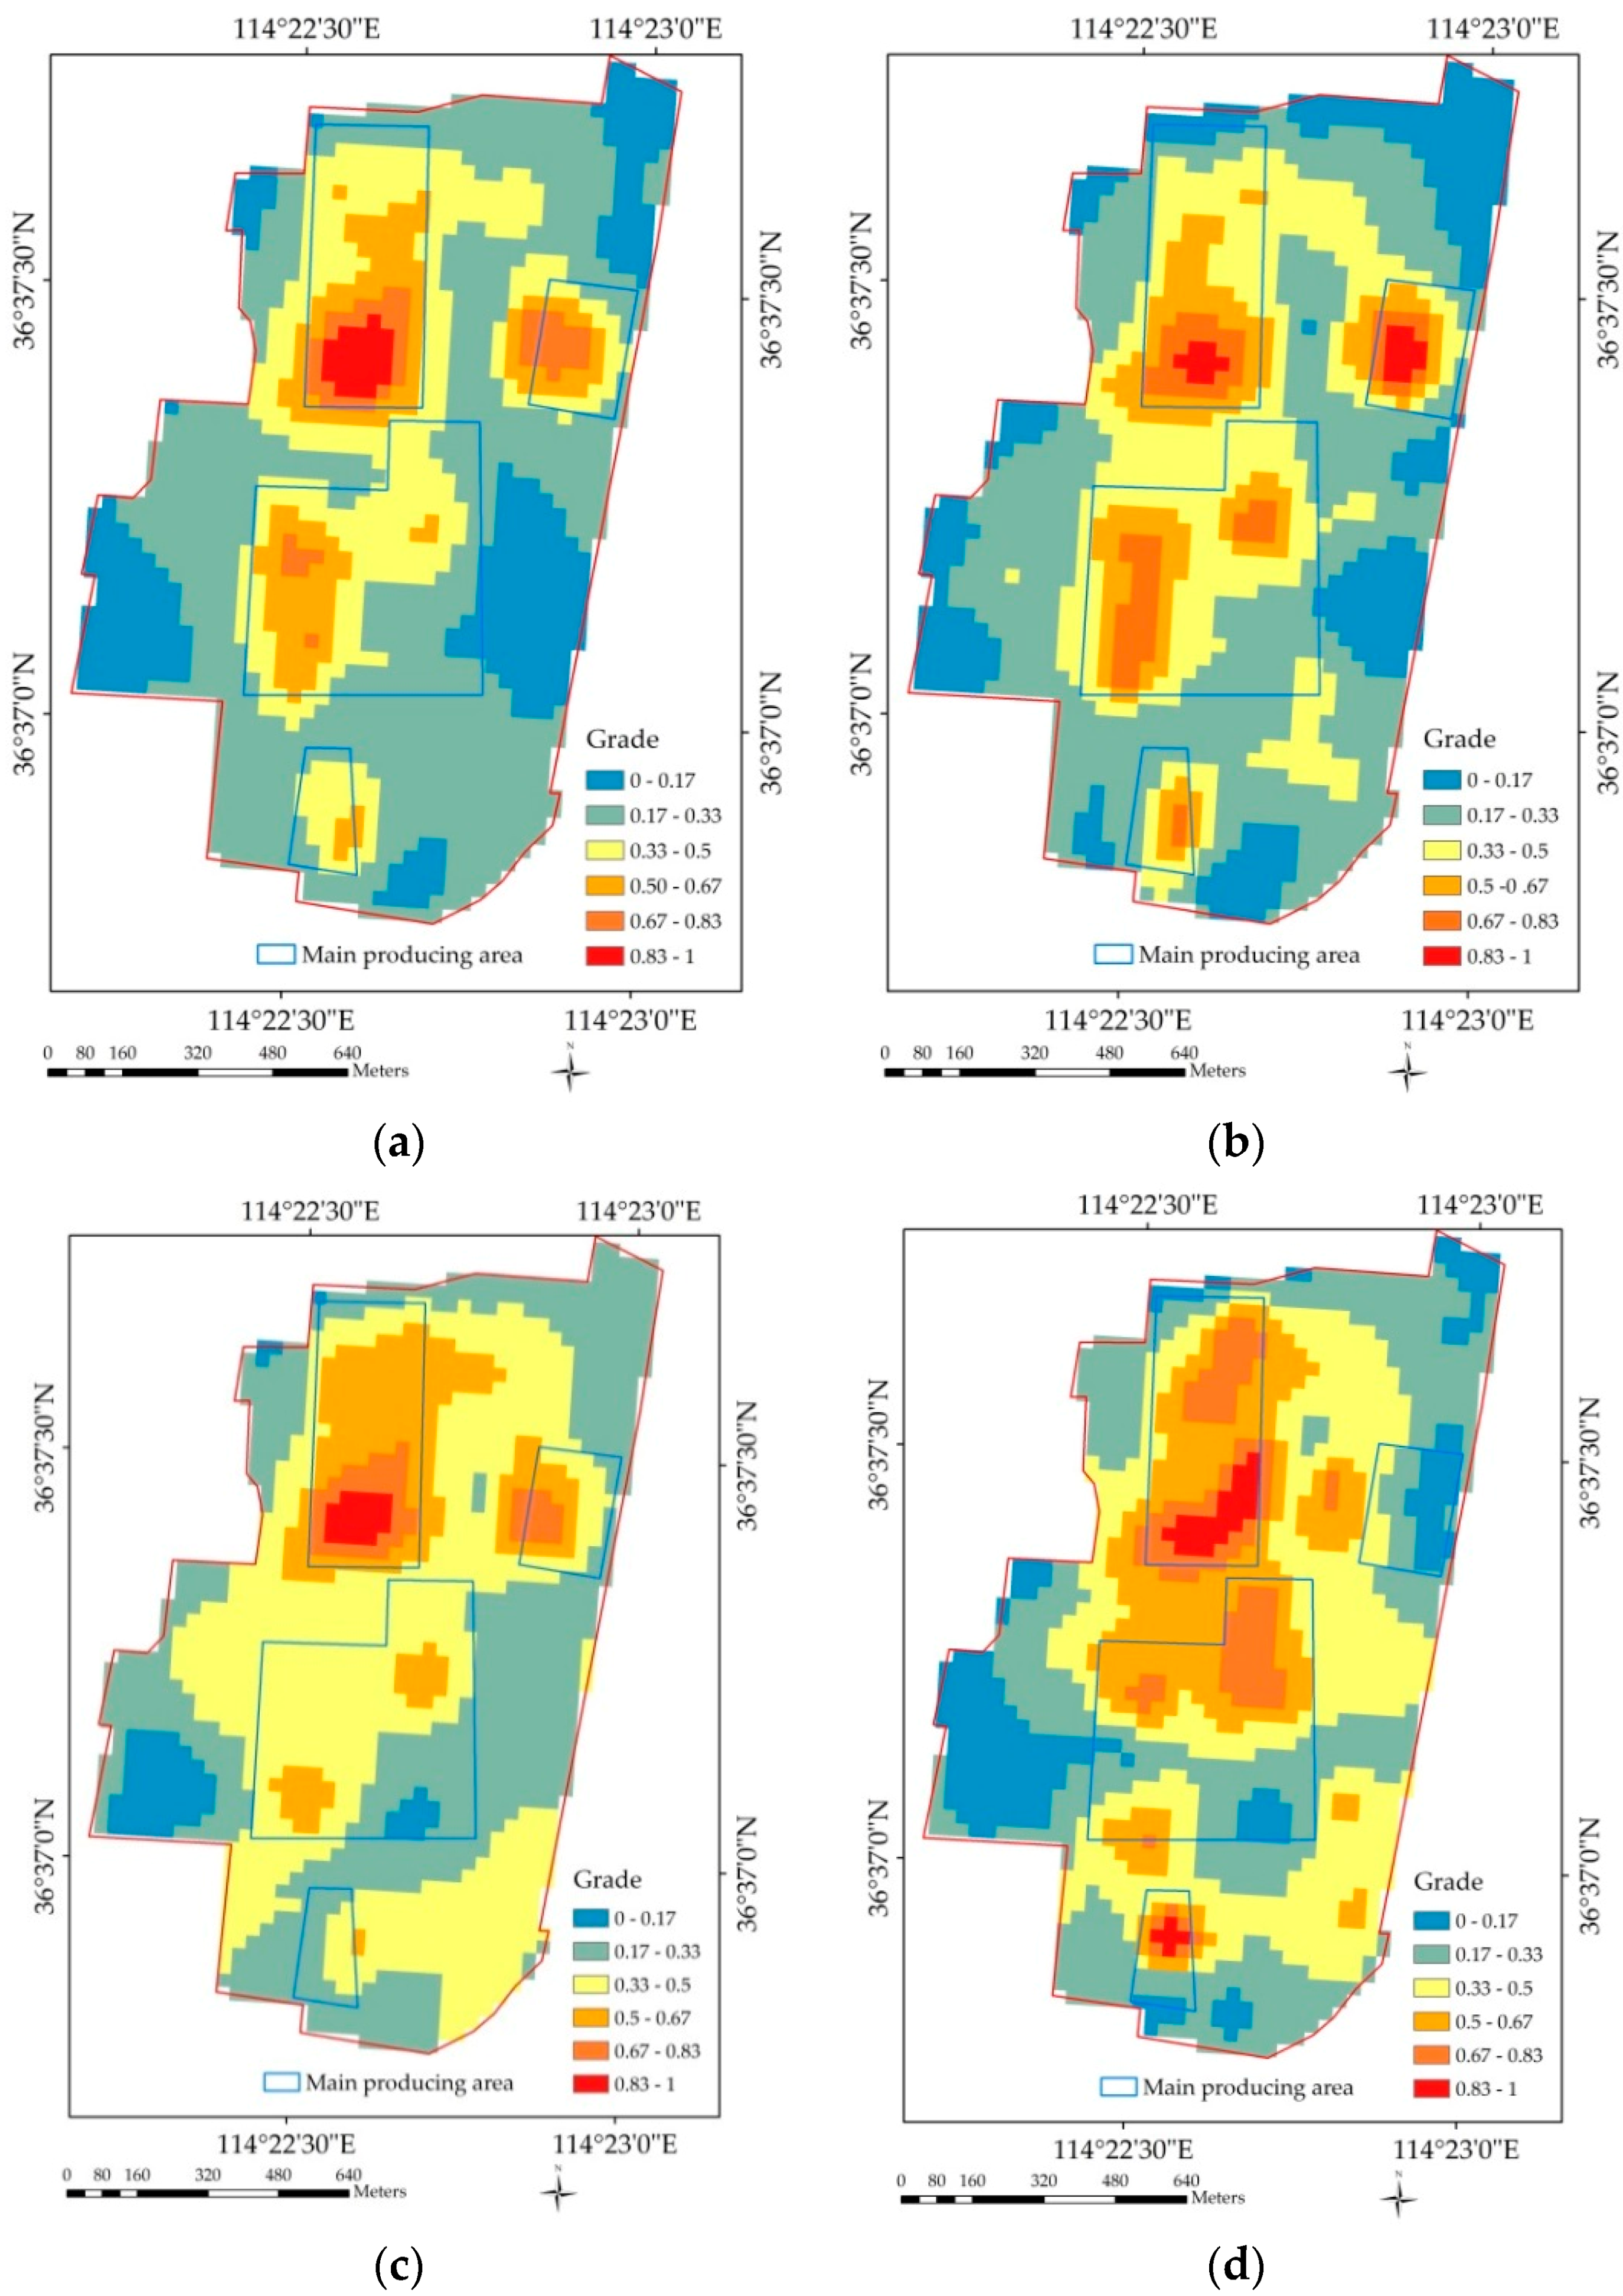 Sustainability | Free Full-Text | A Method for Monitoring